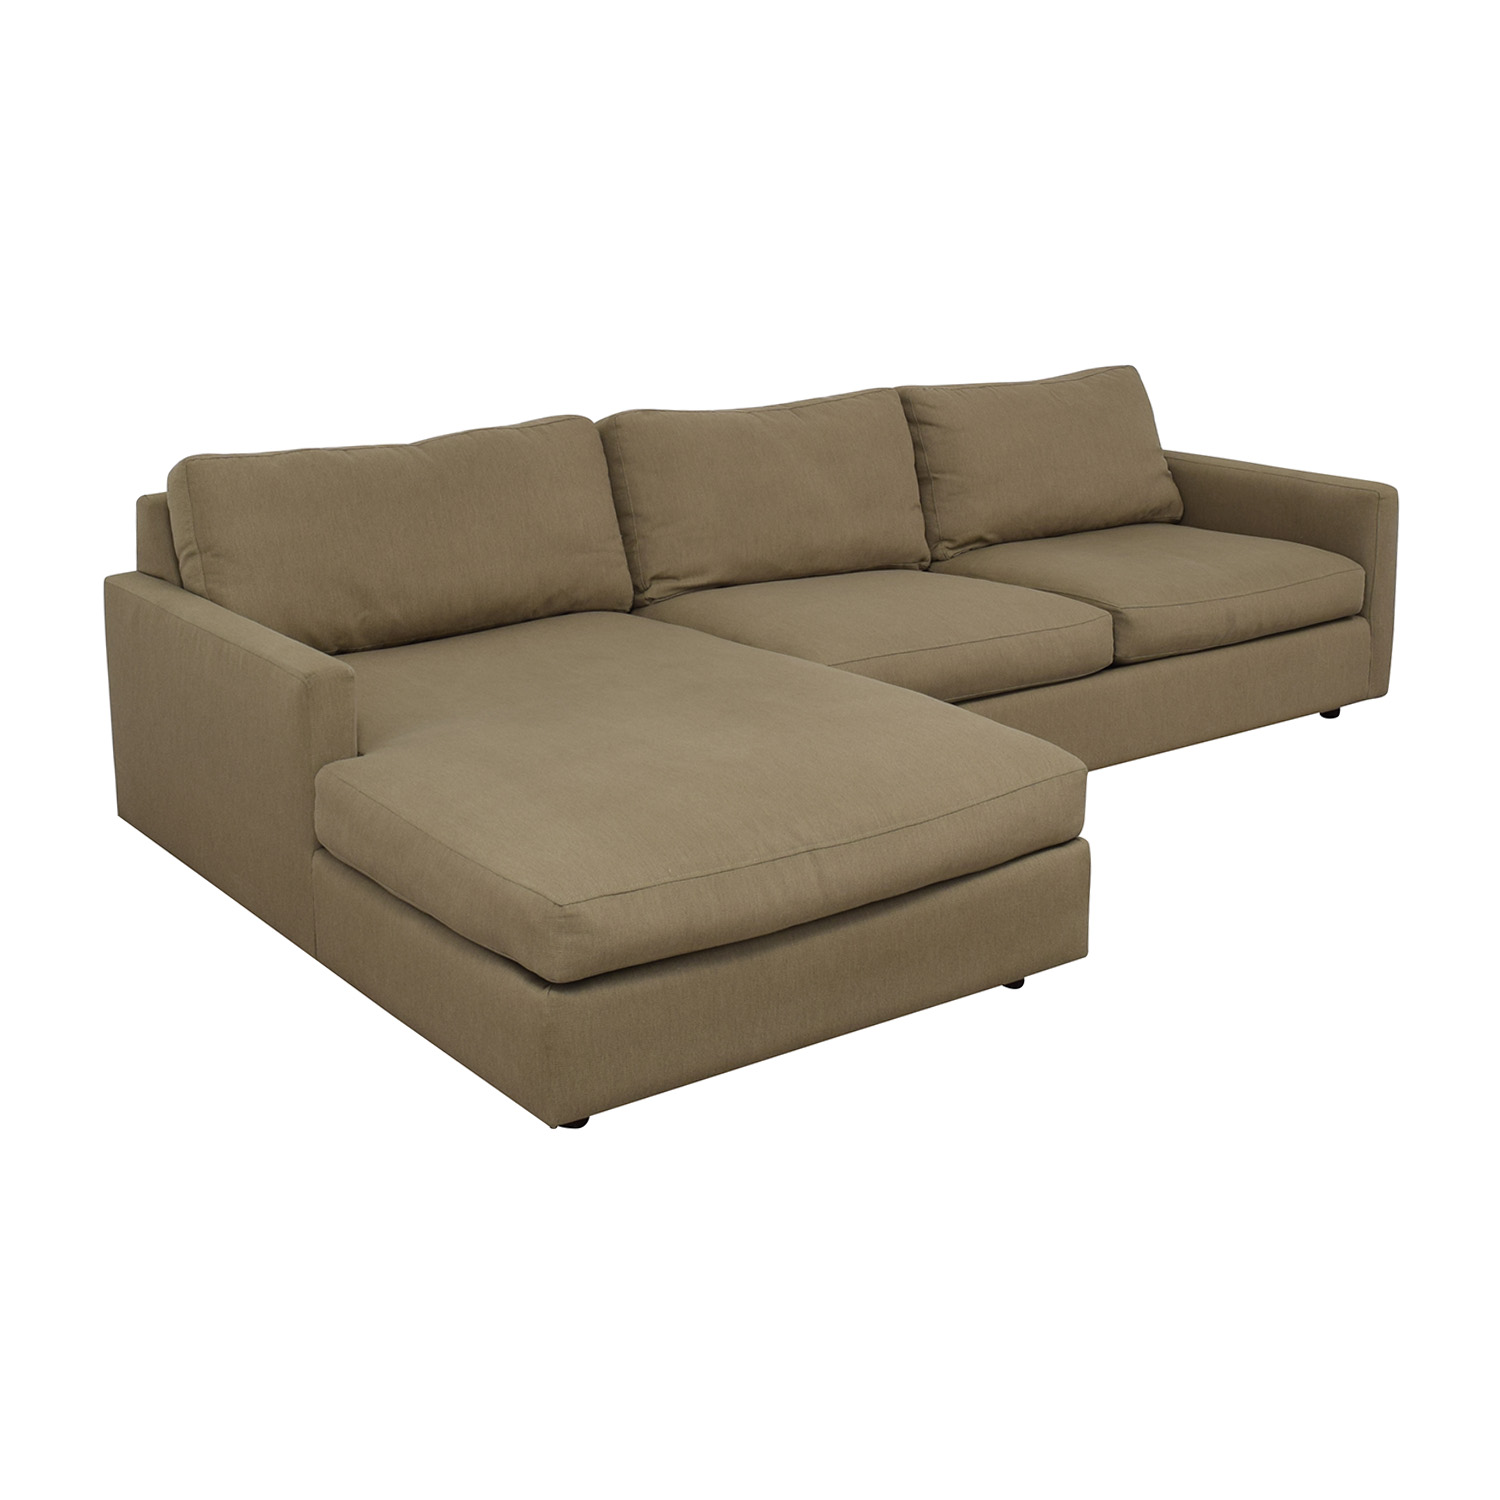 Room & Board Room & Board Easton Sofa with Left-Arm Chaise coupon